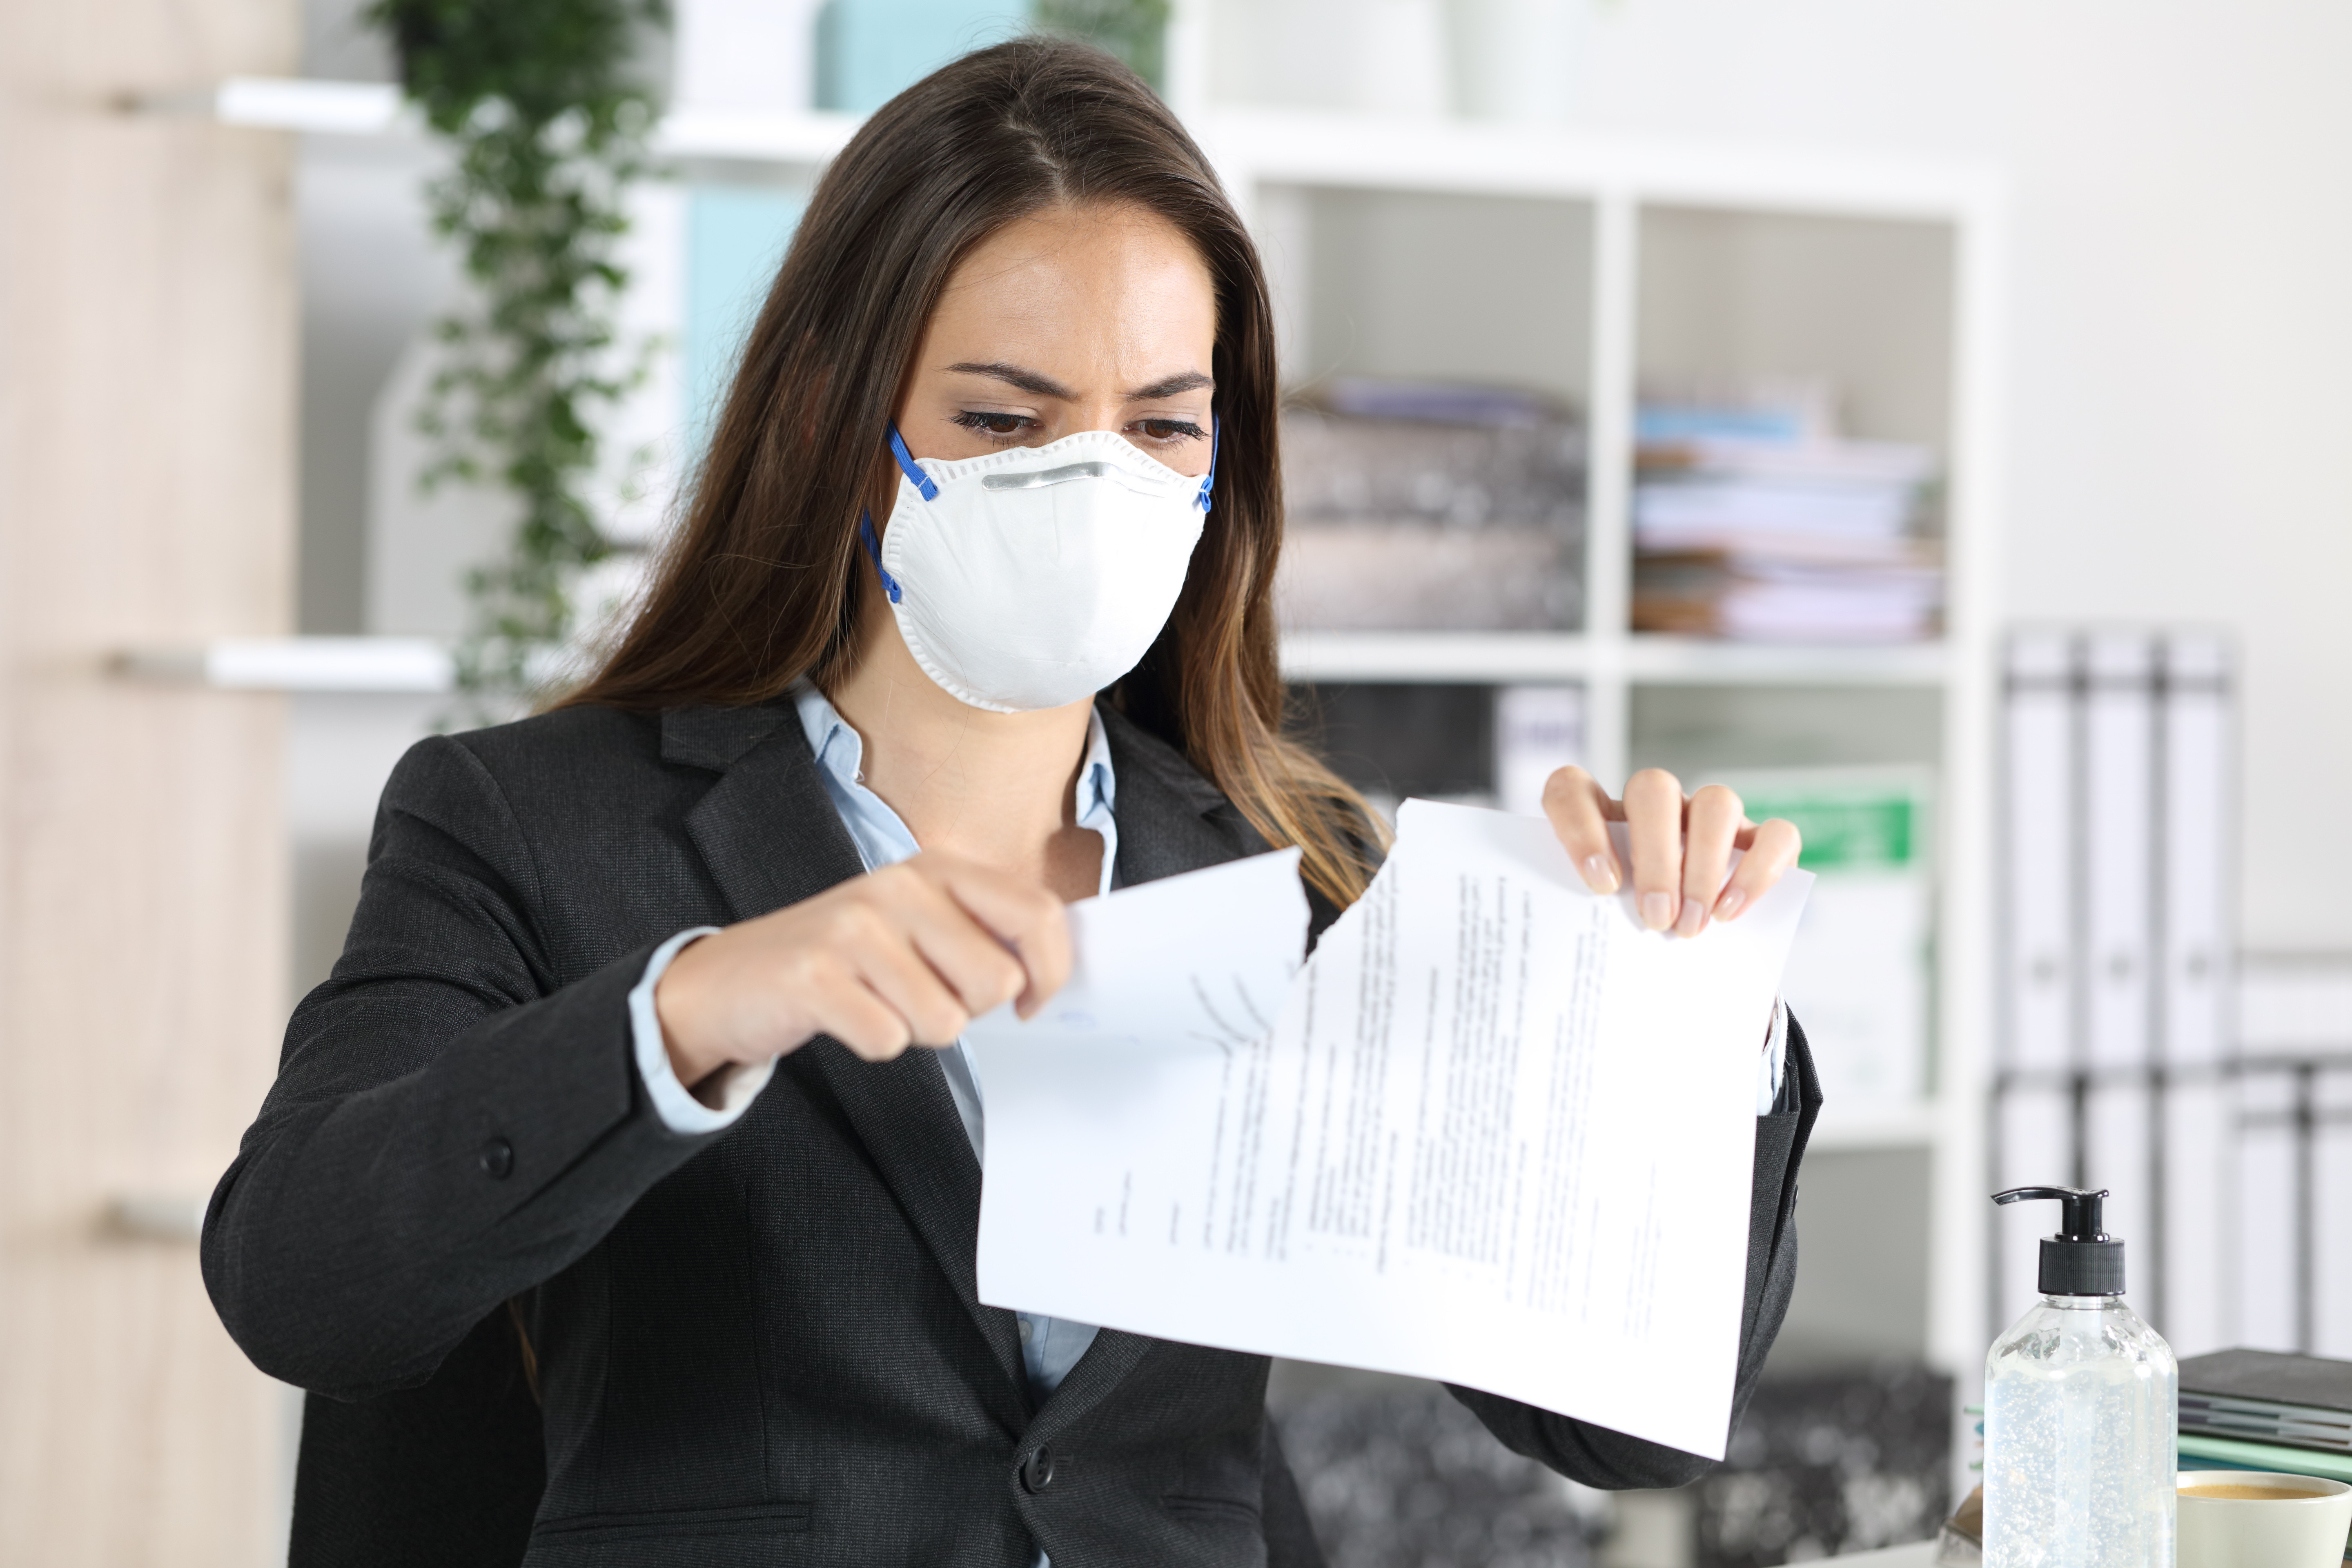 Executive with mask breaking contract at office